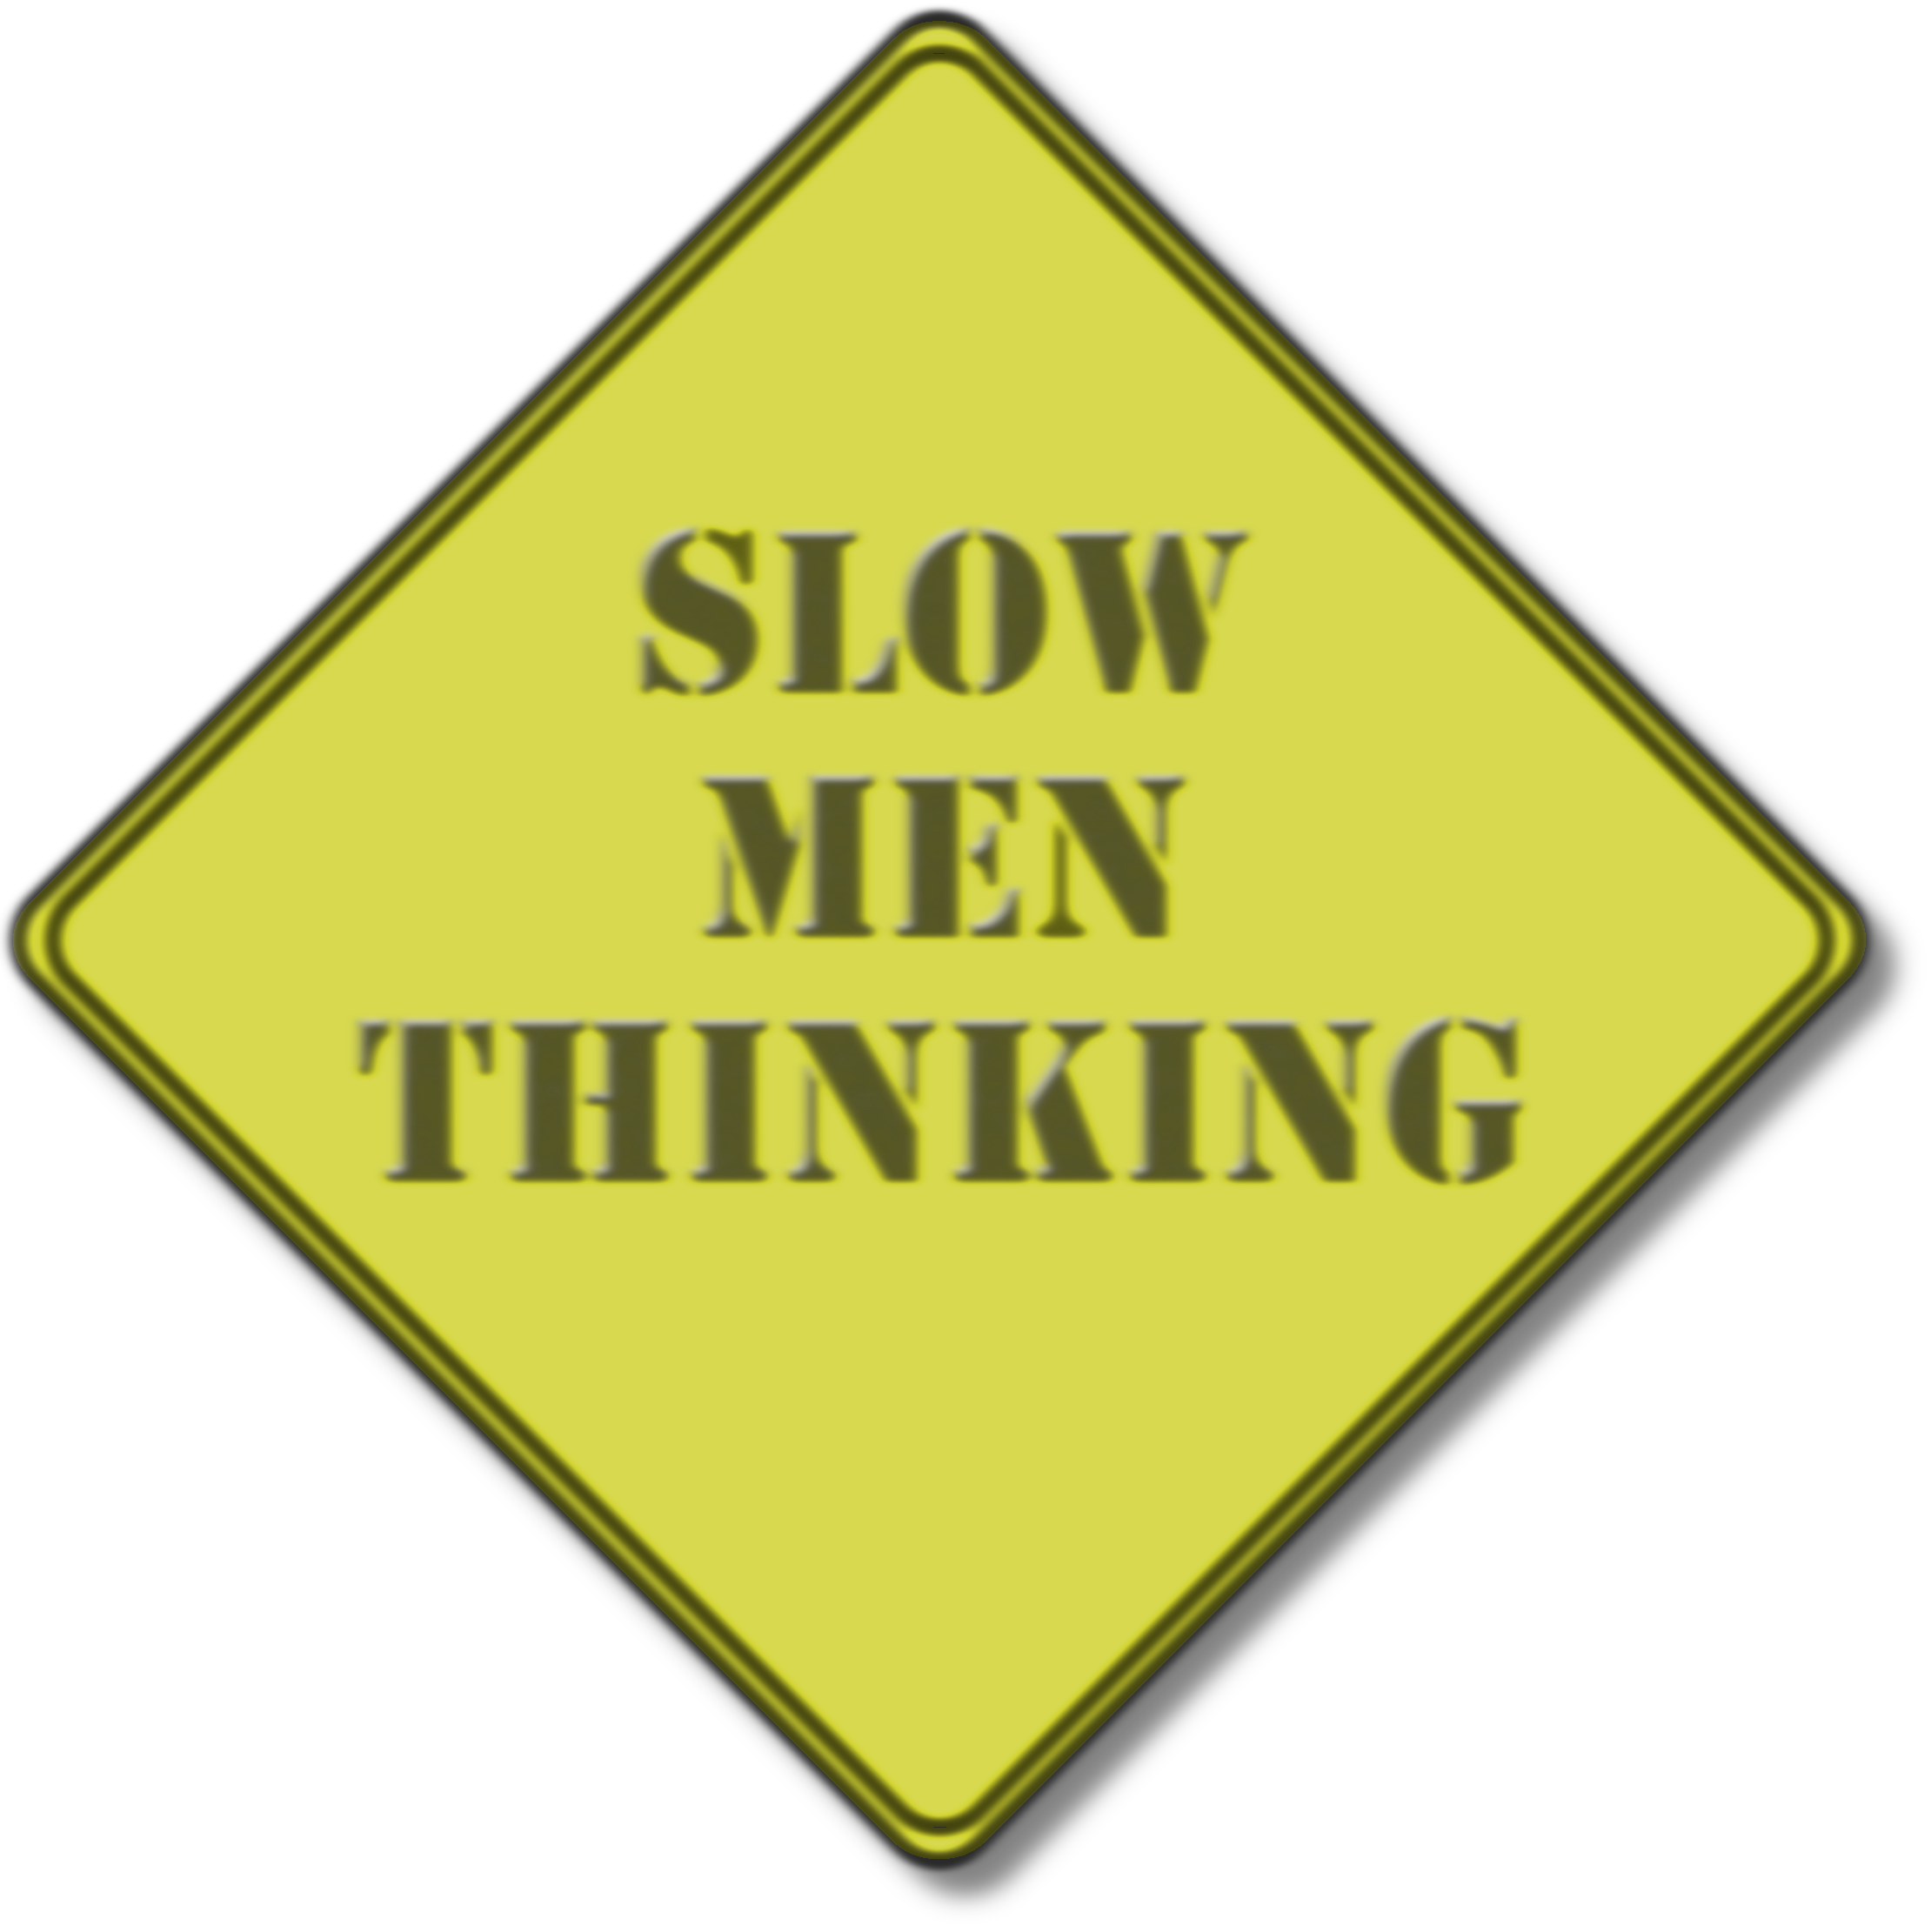 Out of focus Slow Men Thinking  background element